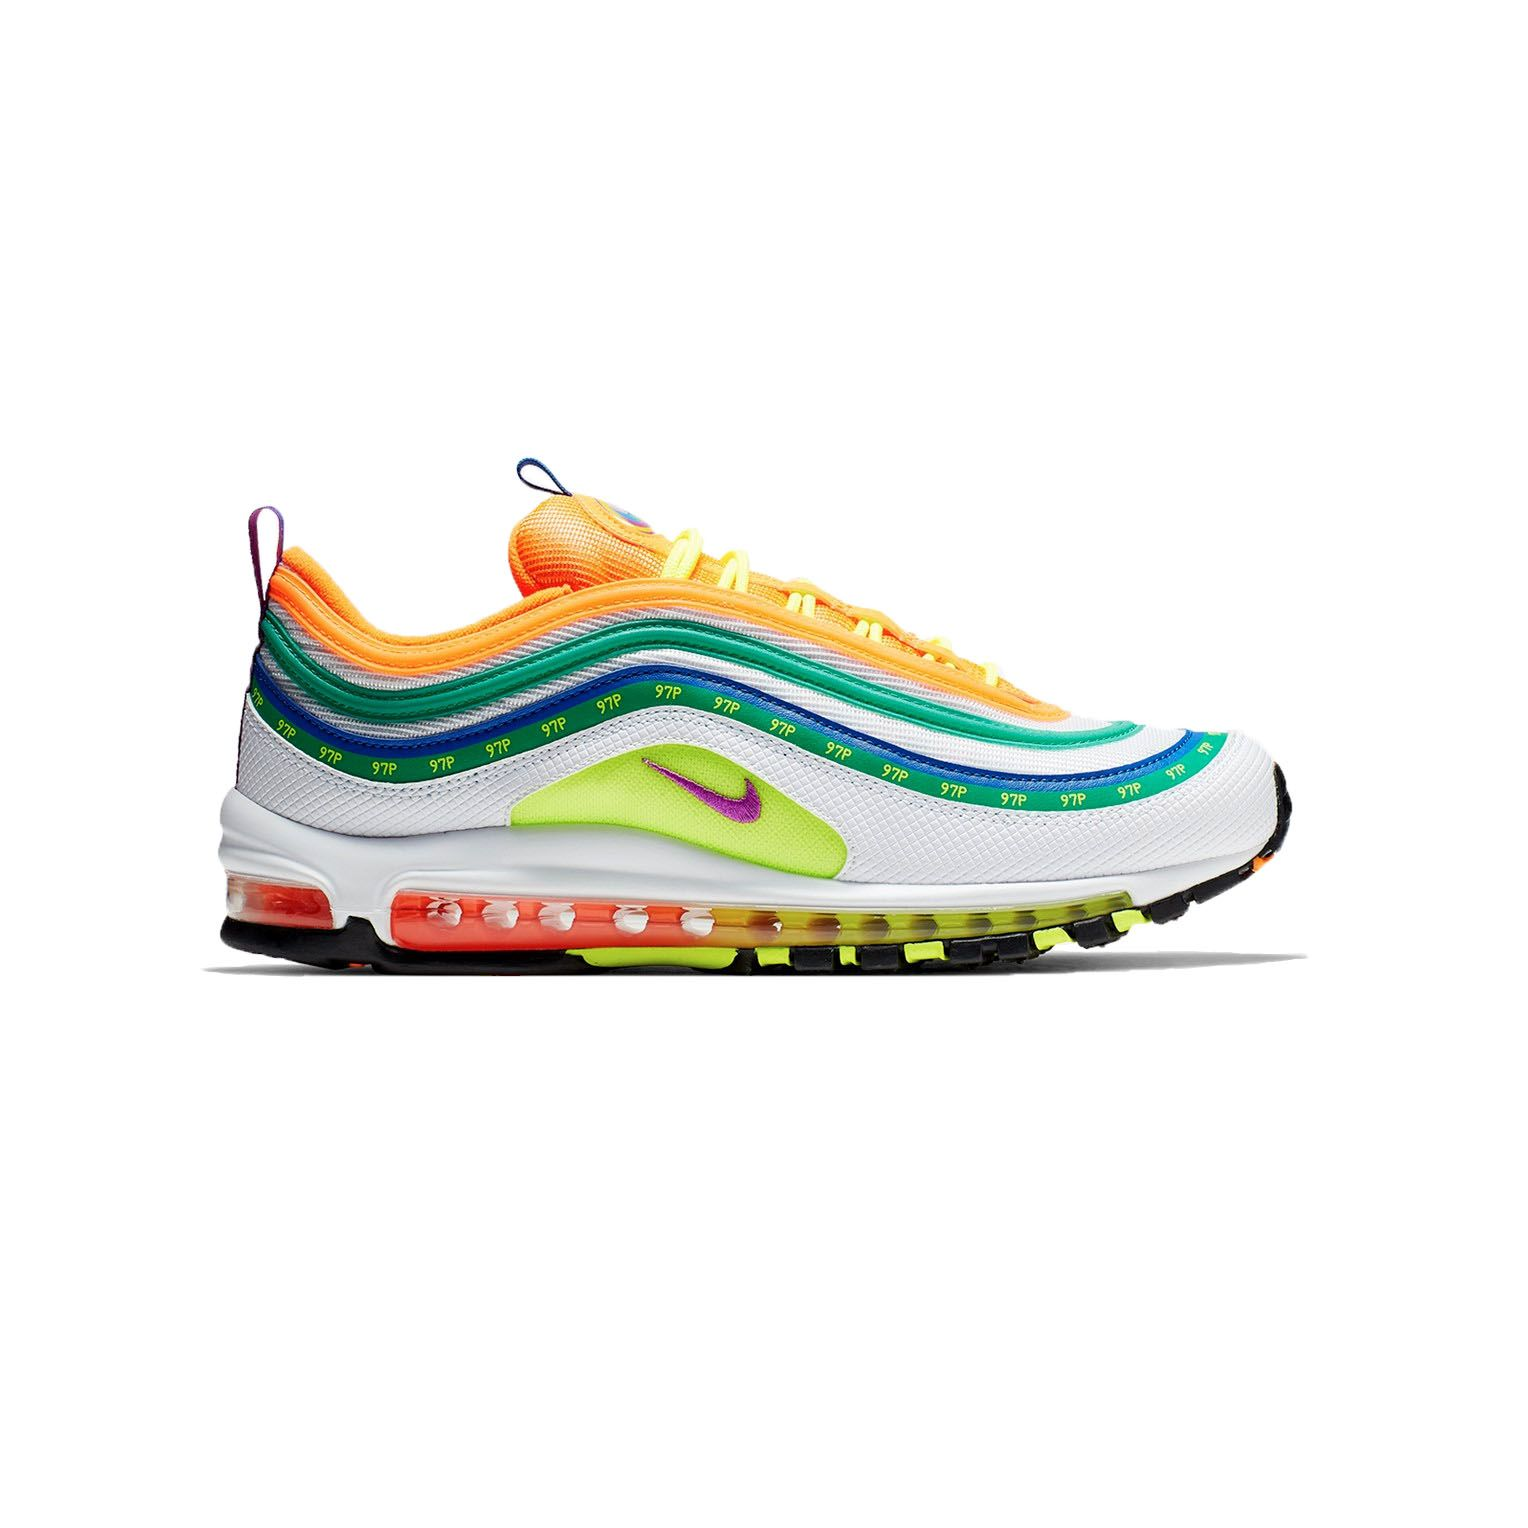 "Air Max 97 On Air ""London Summer of Love"" Sneakers"